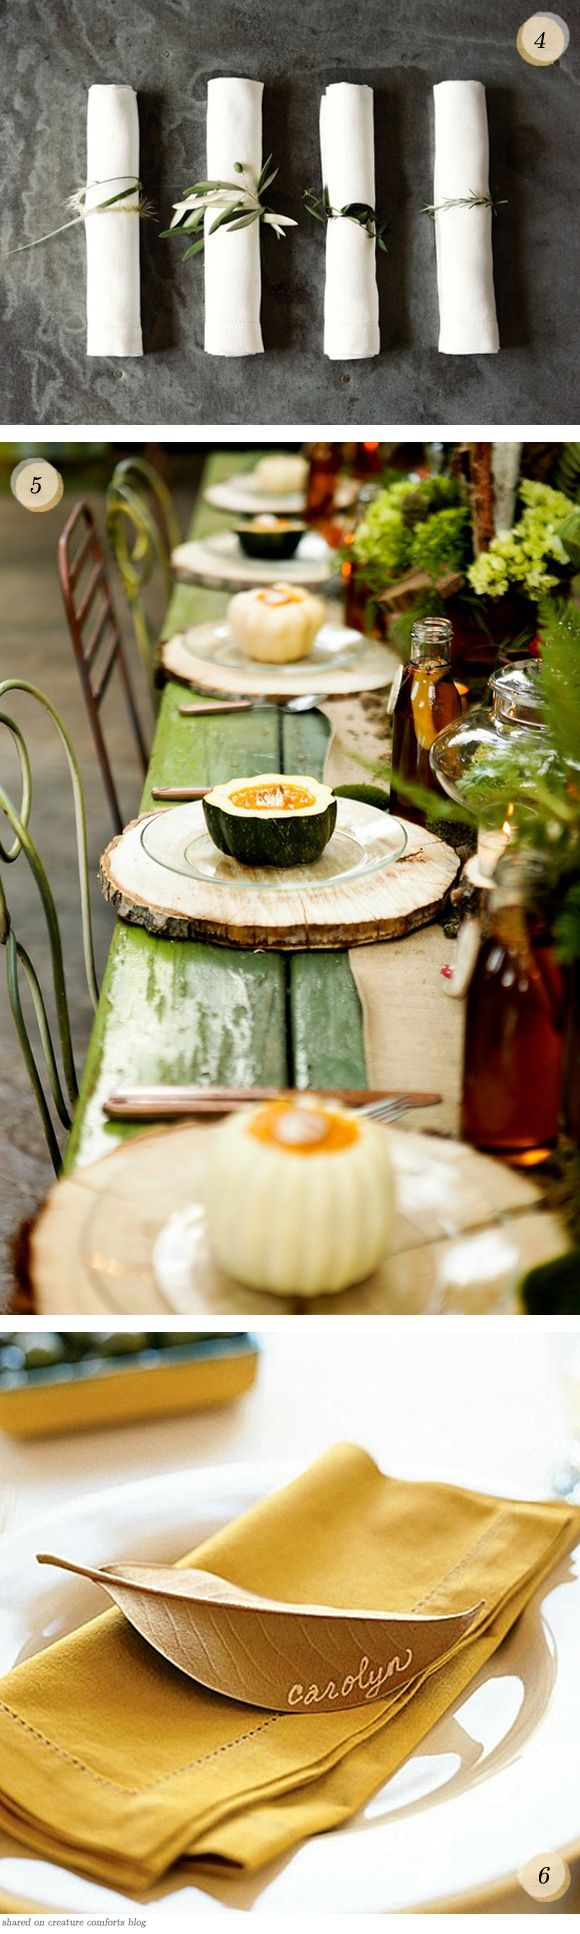 60 Best Tables Images On Pinterest Blue Patio Christmas Parties Ghirardelli Heels Bay Beige 36 Picks Simple Fall Entertaining Inspiration Home Creature Comforts Daily